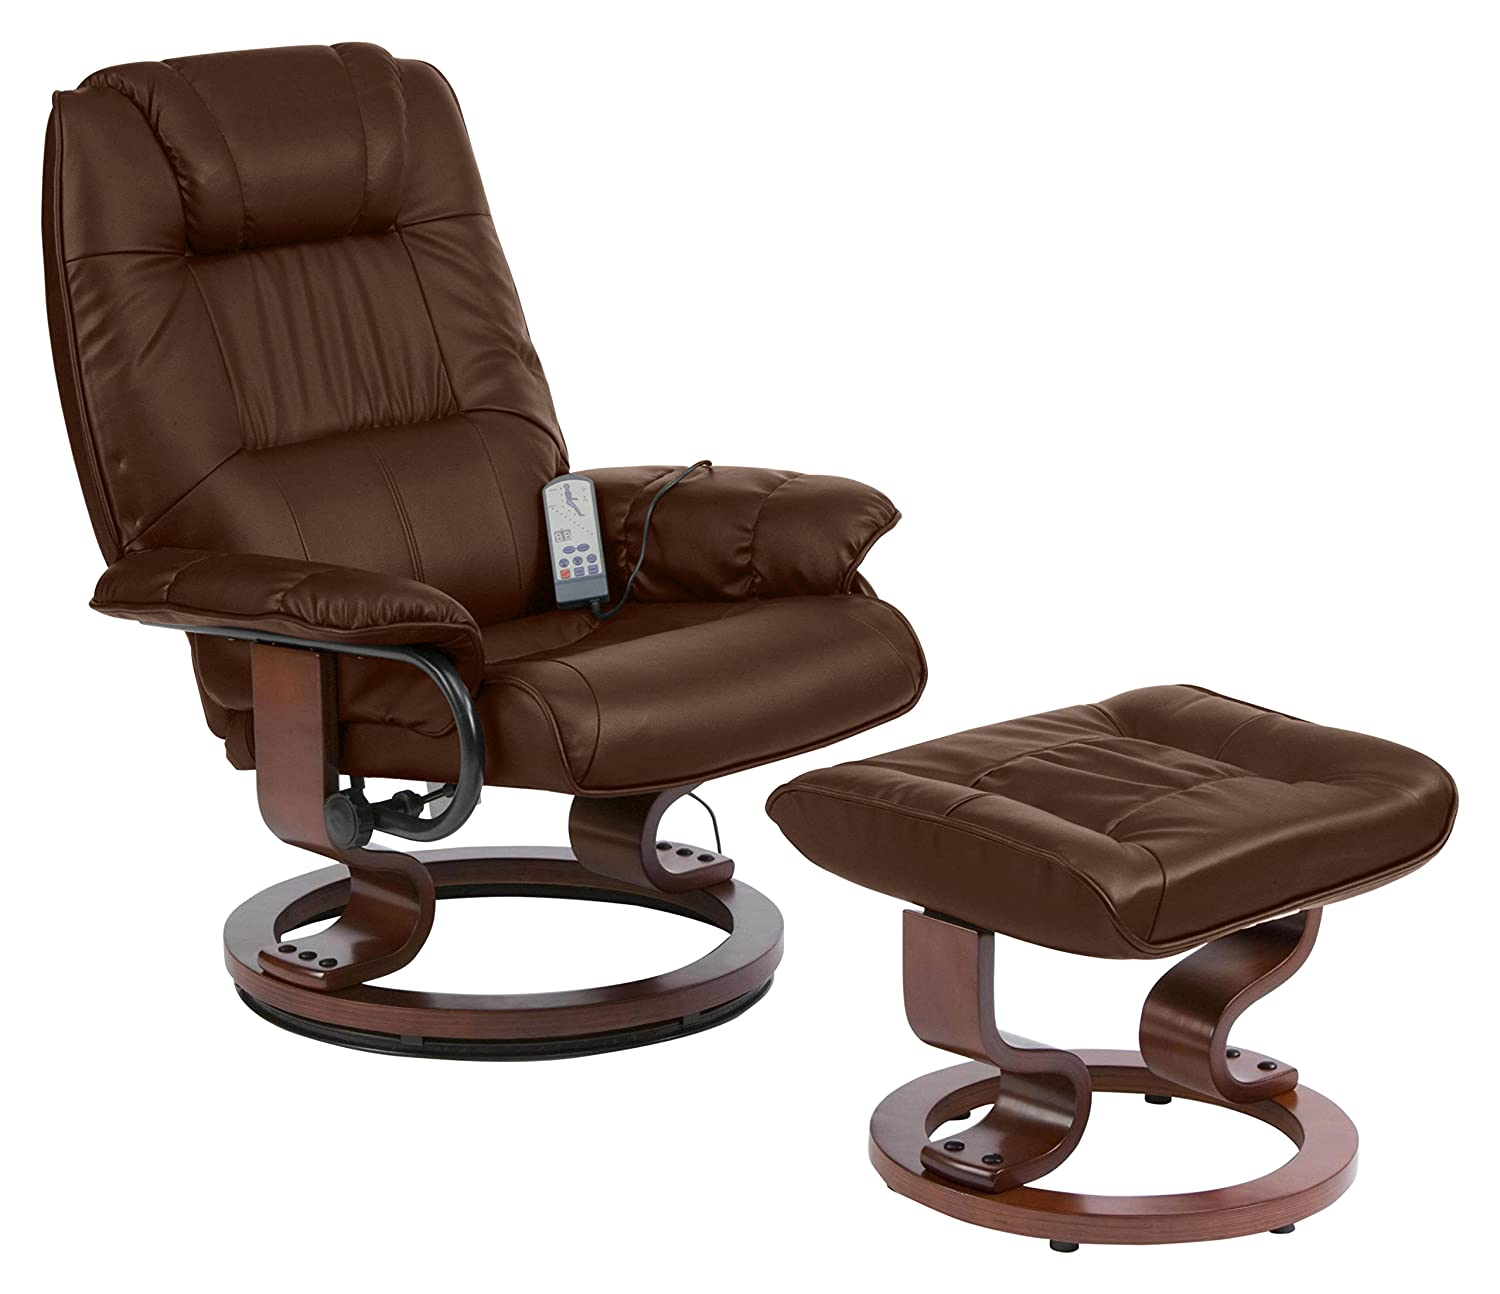 Napoli Recliner Black Massage Heat Chair And Foot Stool Amazon